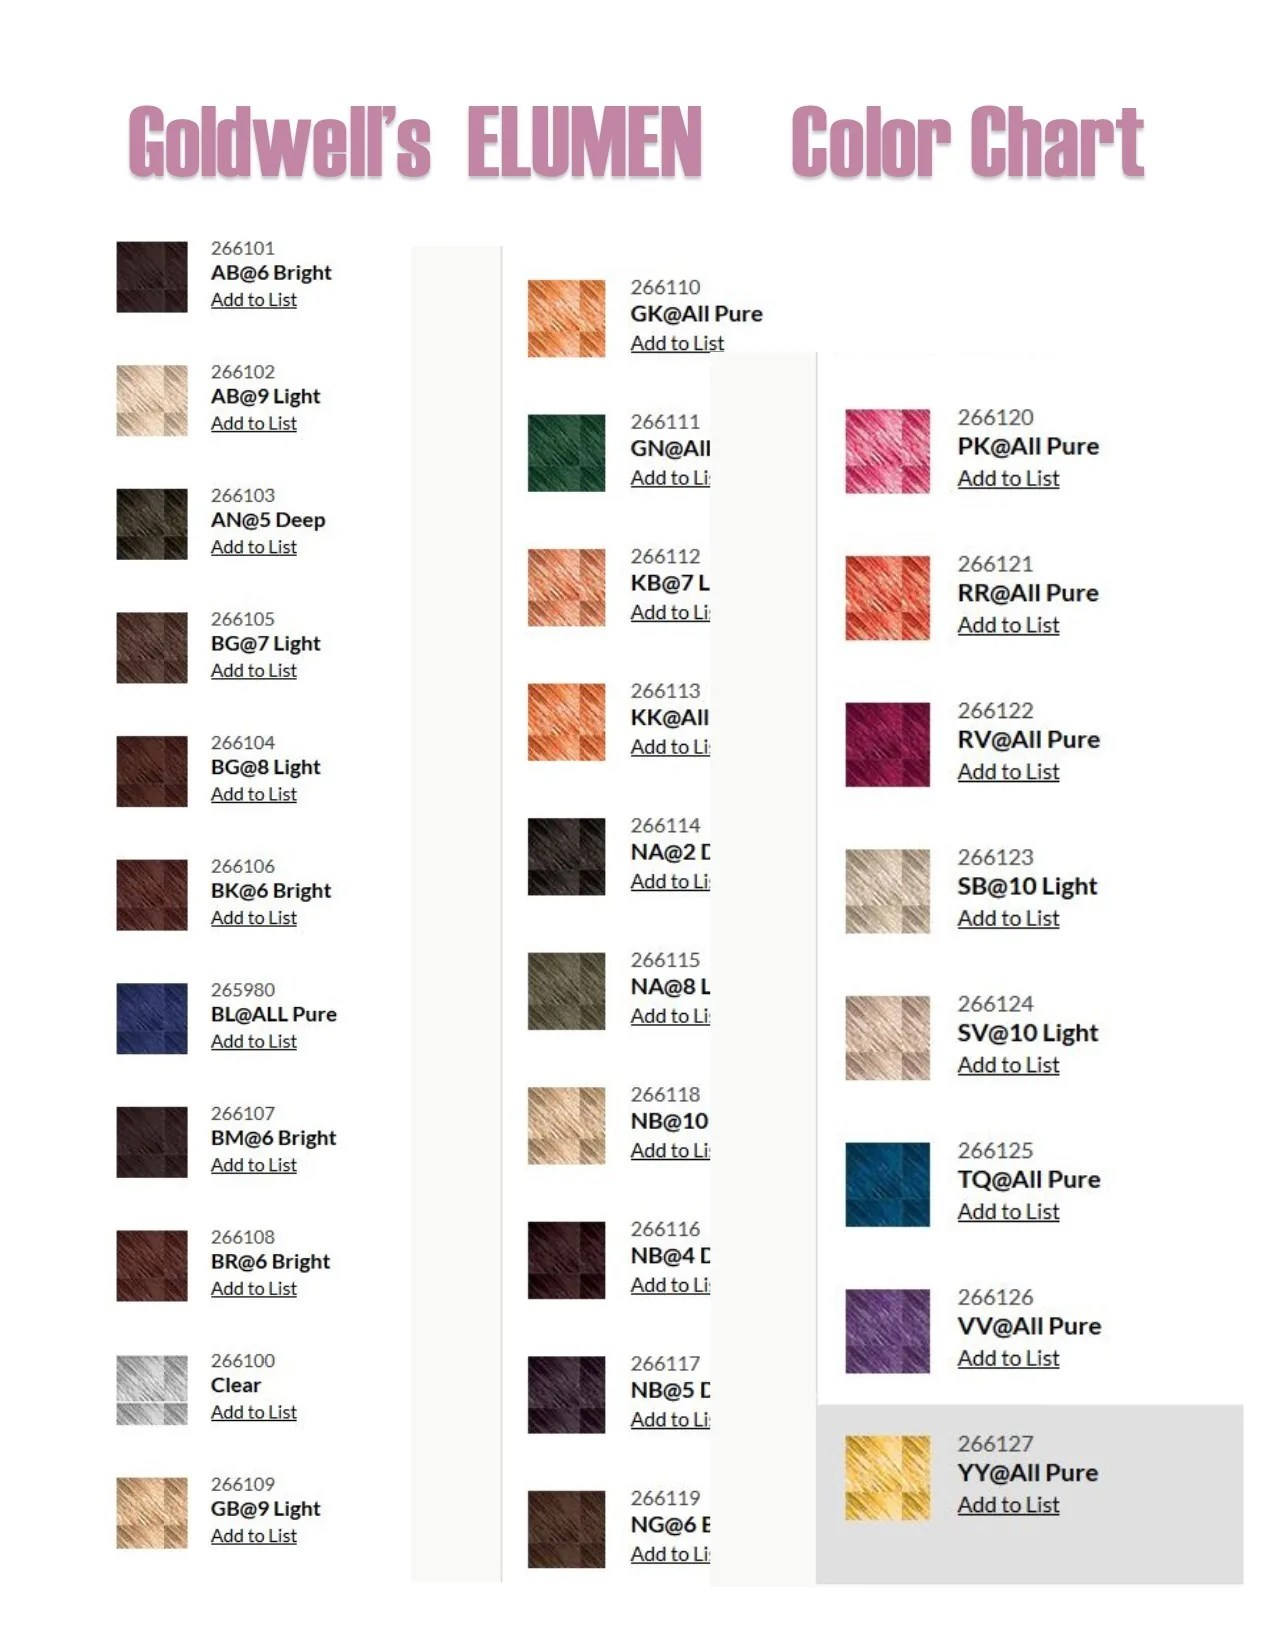 Elumen hair color chart gallery example ideas also goldwell book coloring pages rh mastheadprintstudio